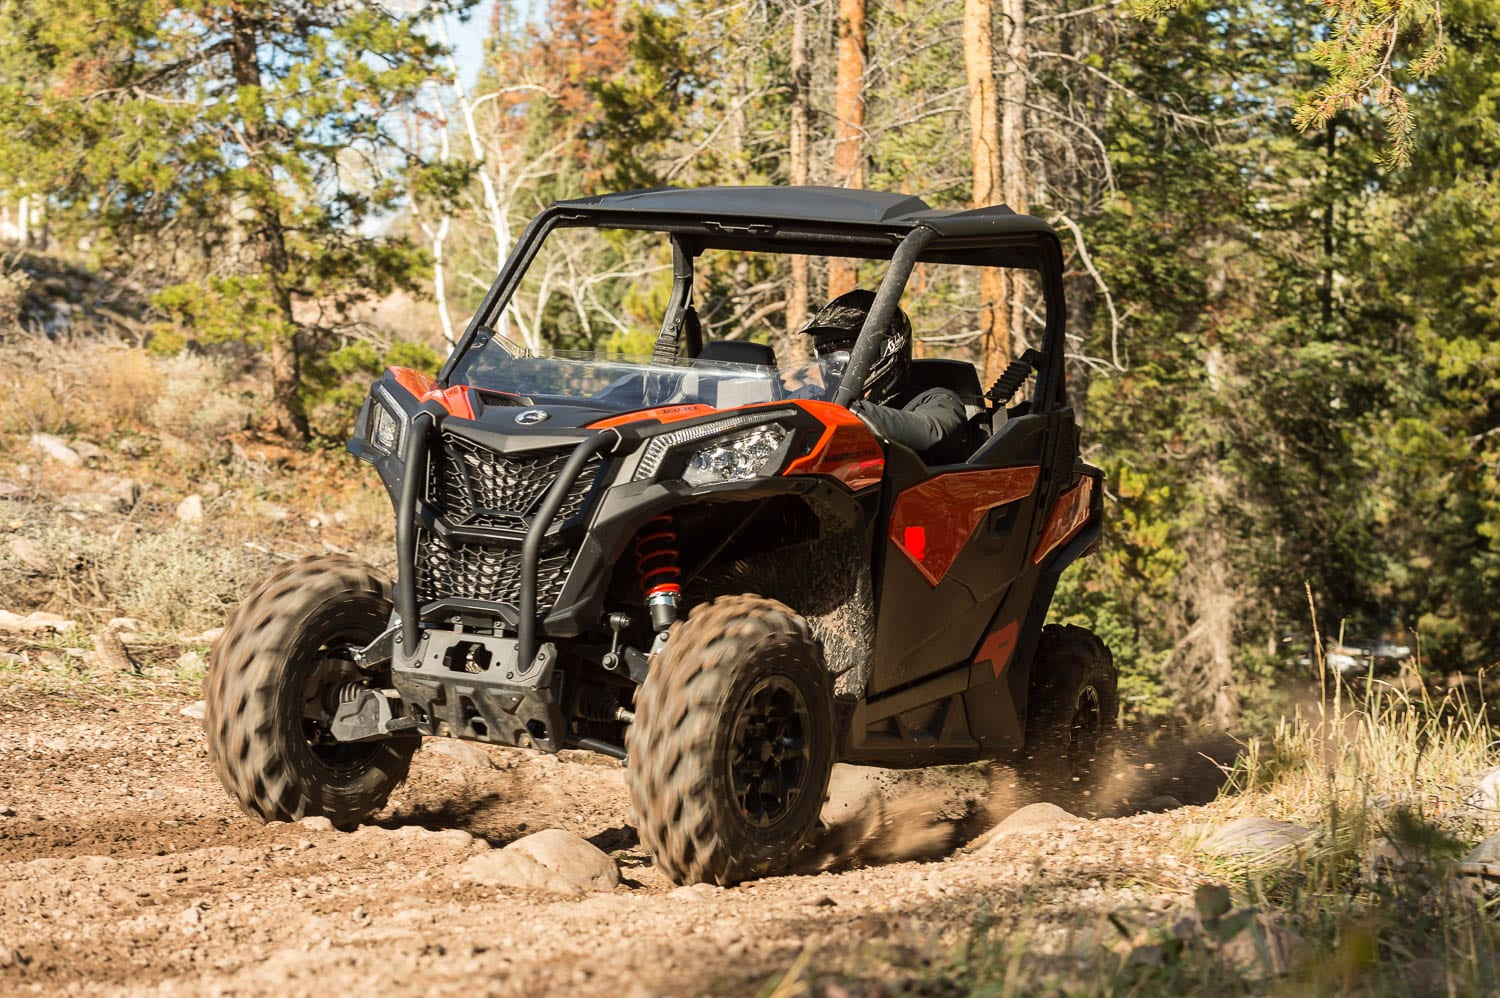 2018 Can-Am Maverick Trail Review | ATV Trail Rider Magazine